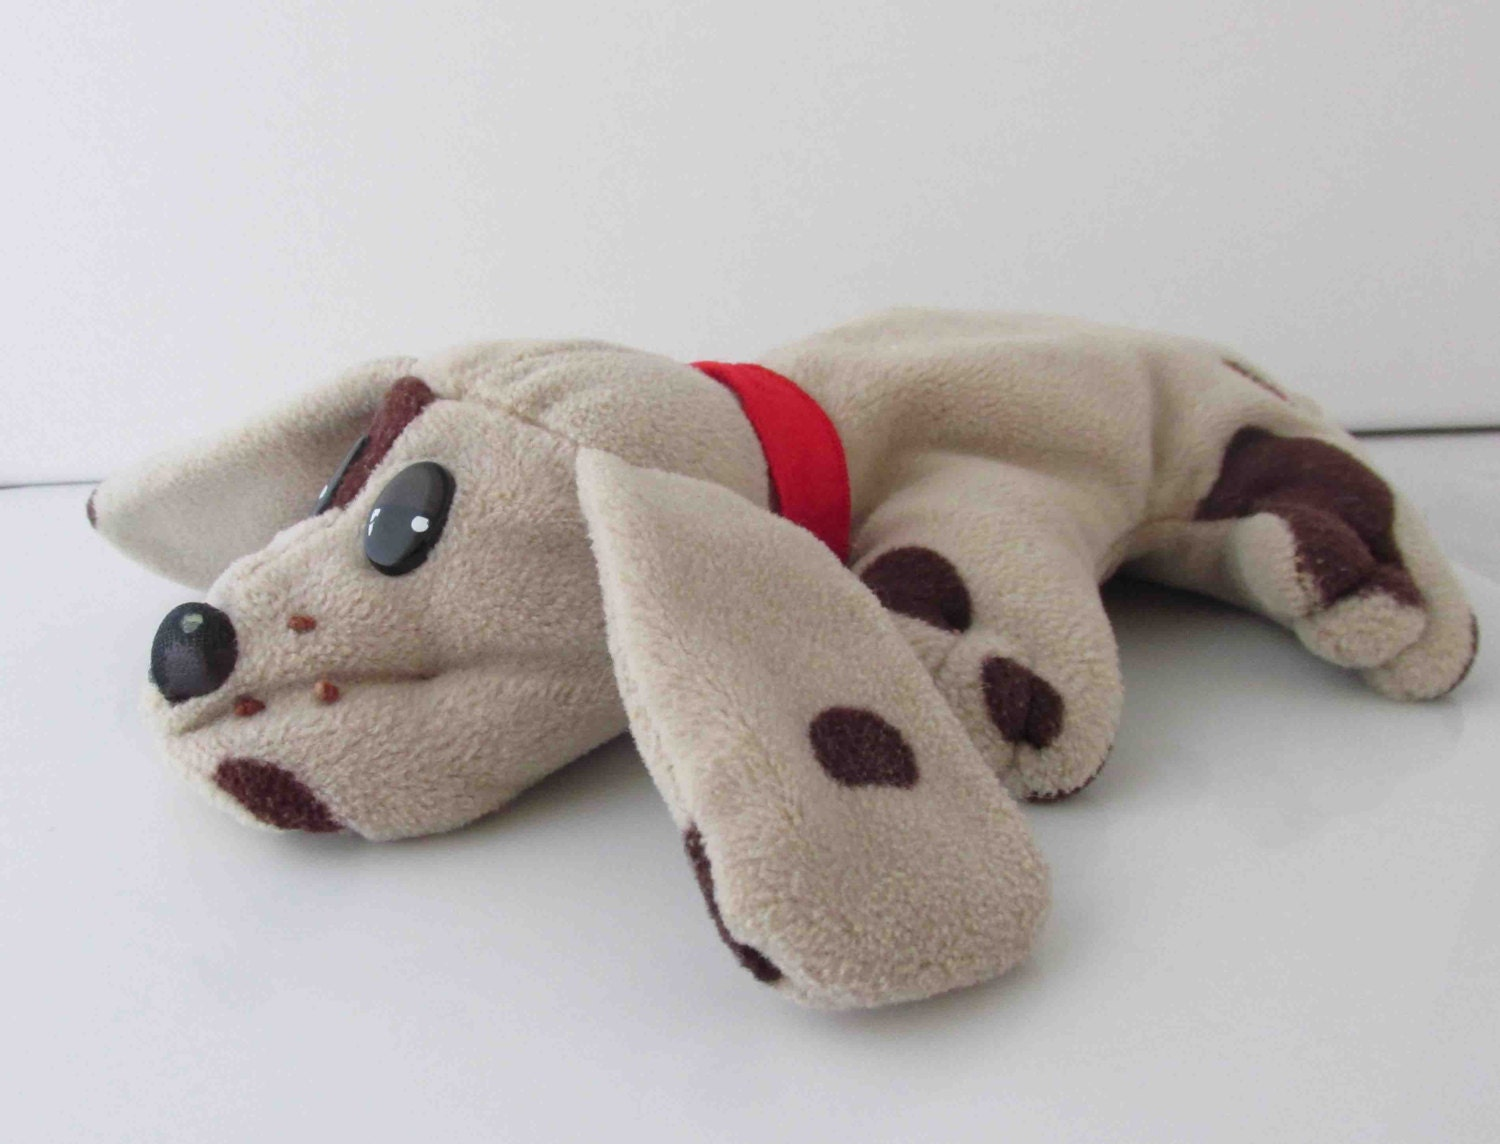 Pound Puppy Plush Dog Toy Stuffed Vintage 9 Inches